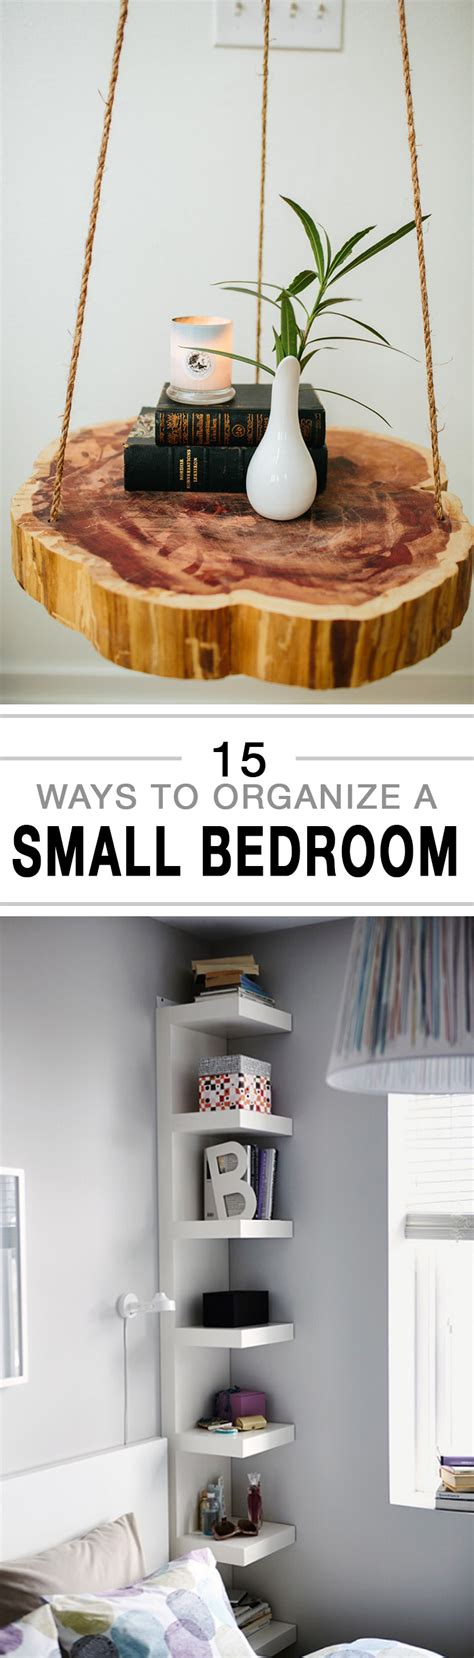 ways to arrange a small bedroom ways to organize a small bedroom 187 14 ways to organize a bedroom creative ways to